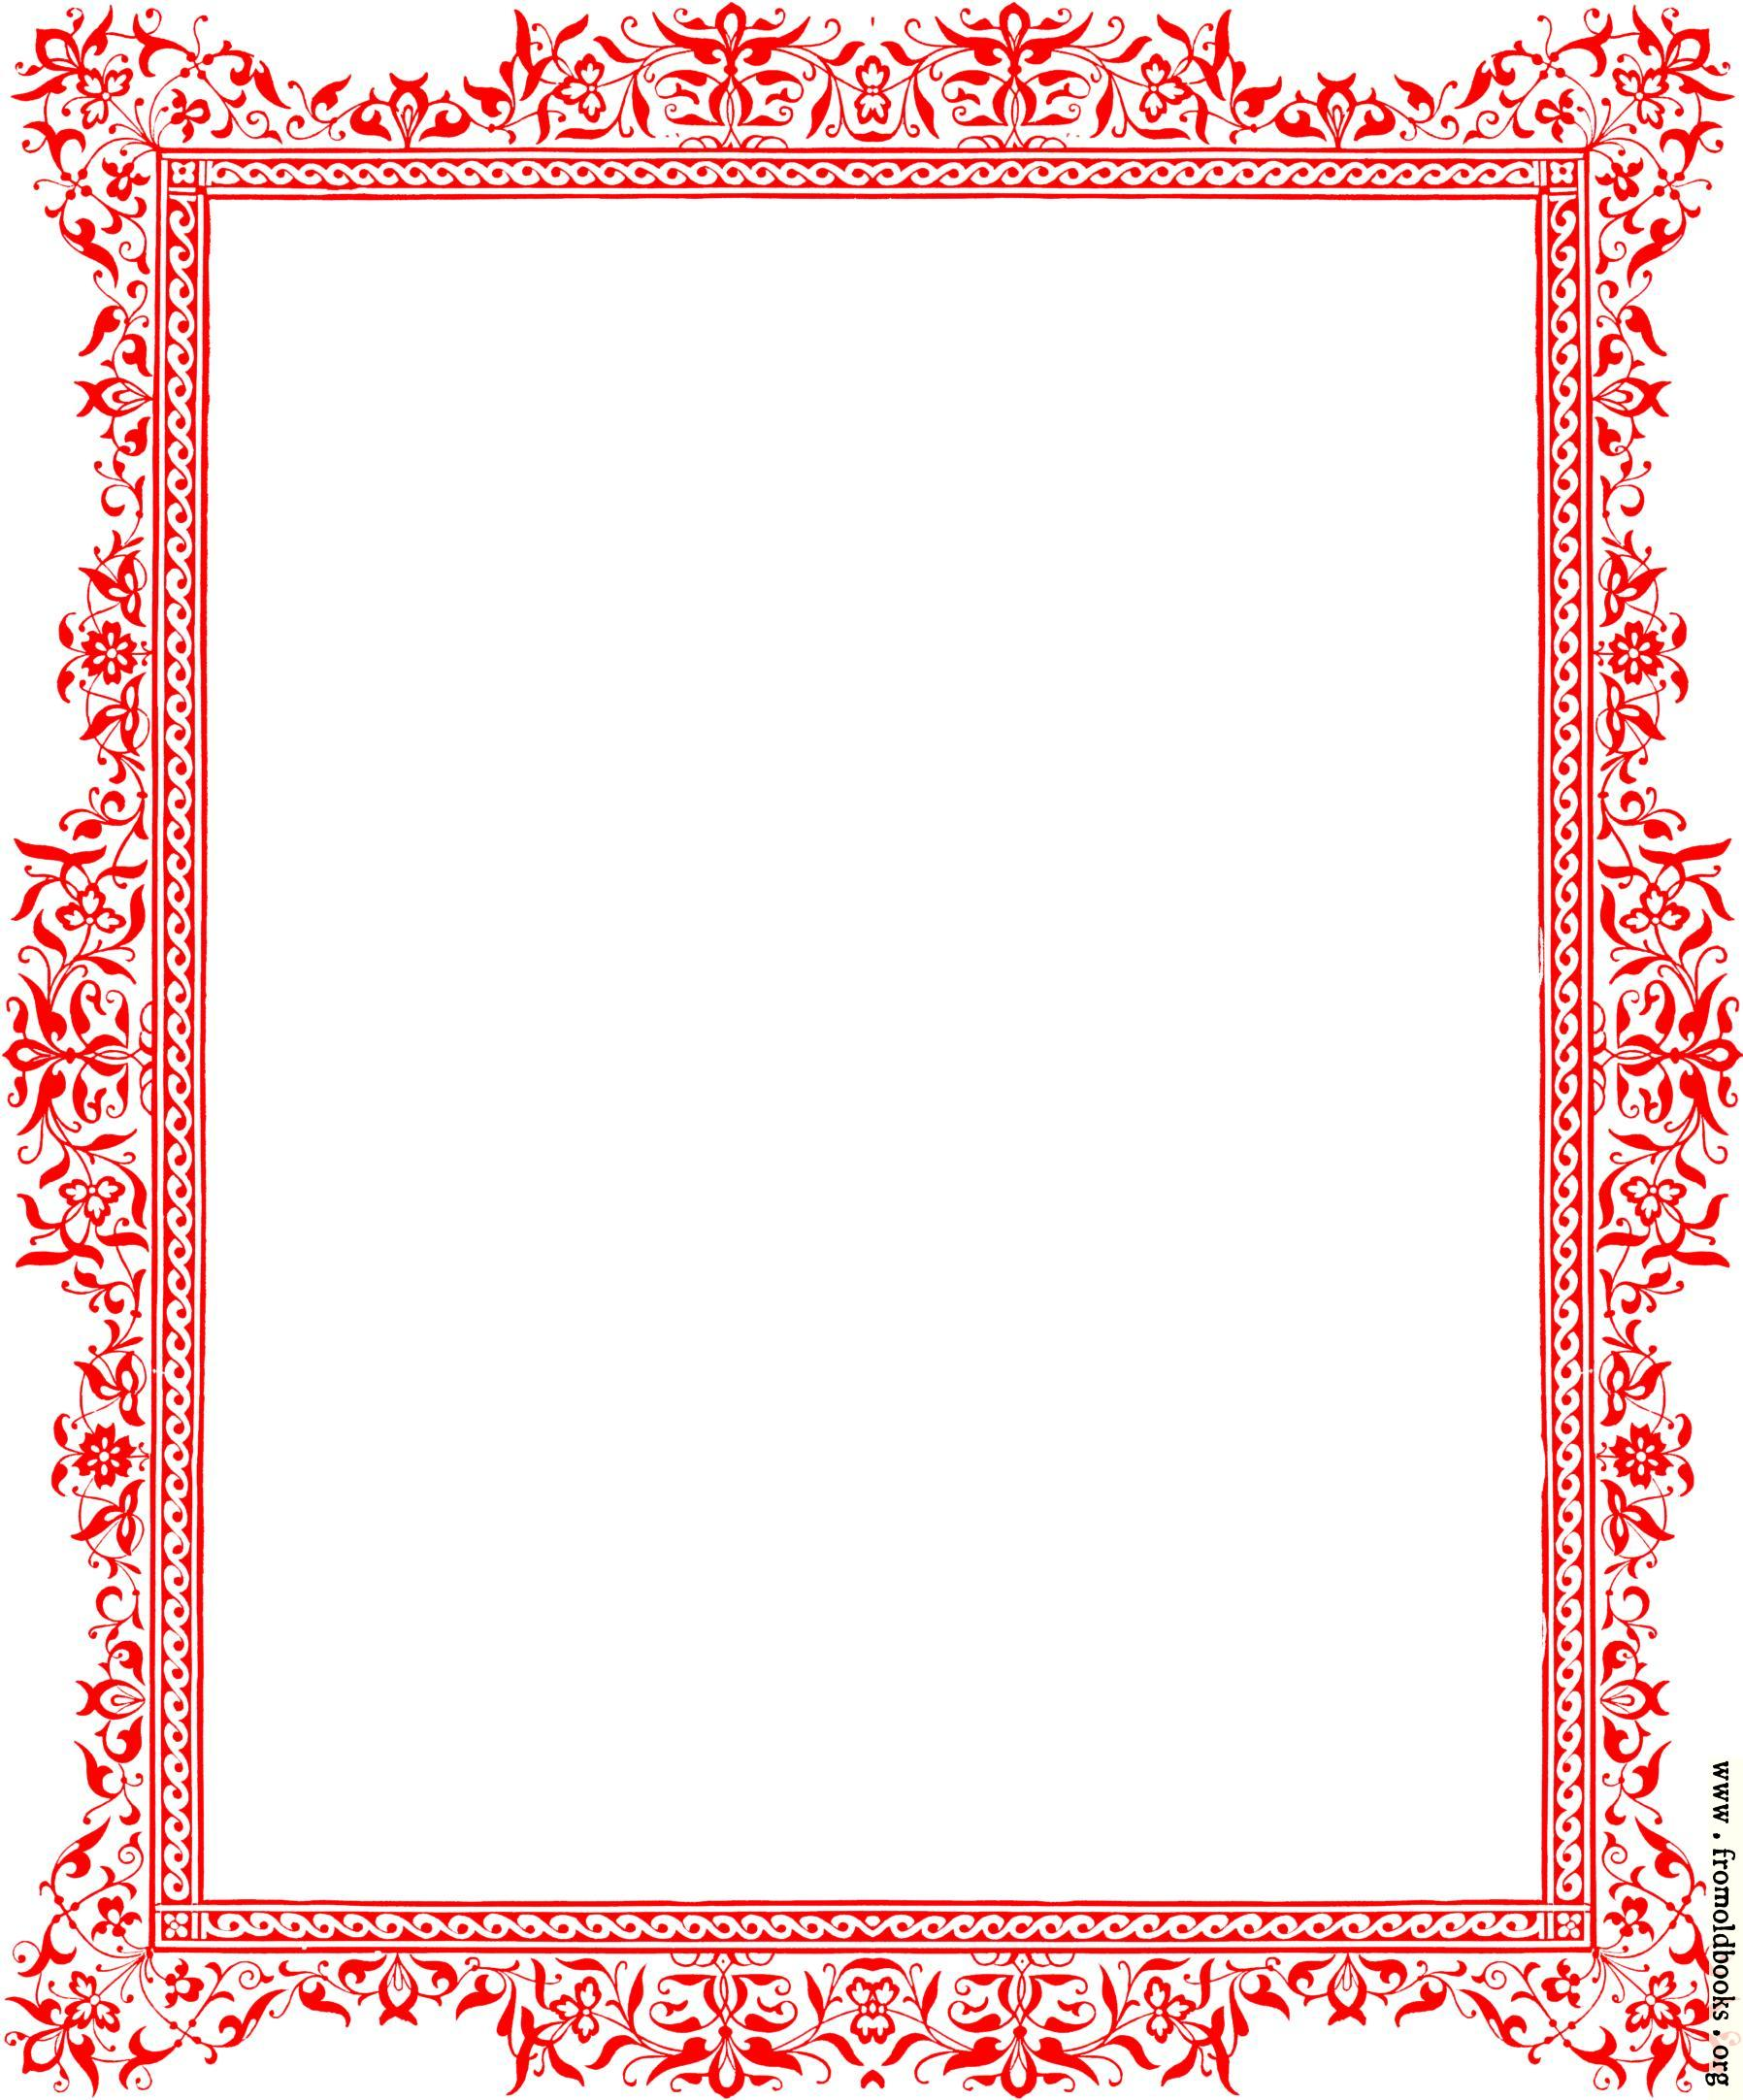 red border from page 27details